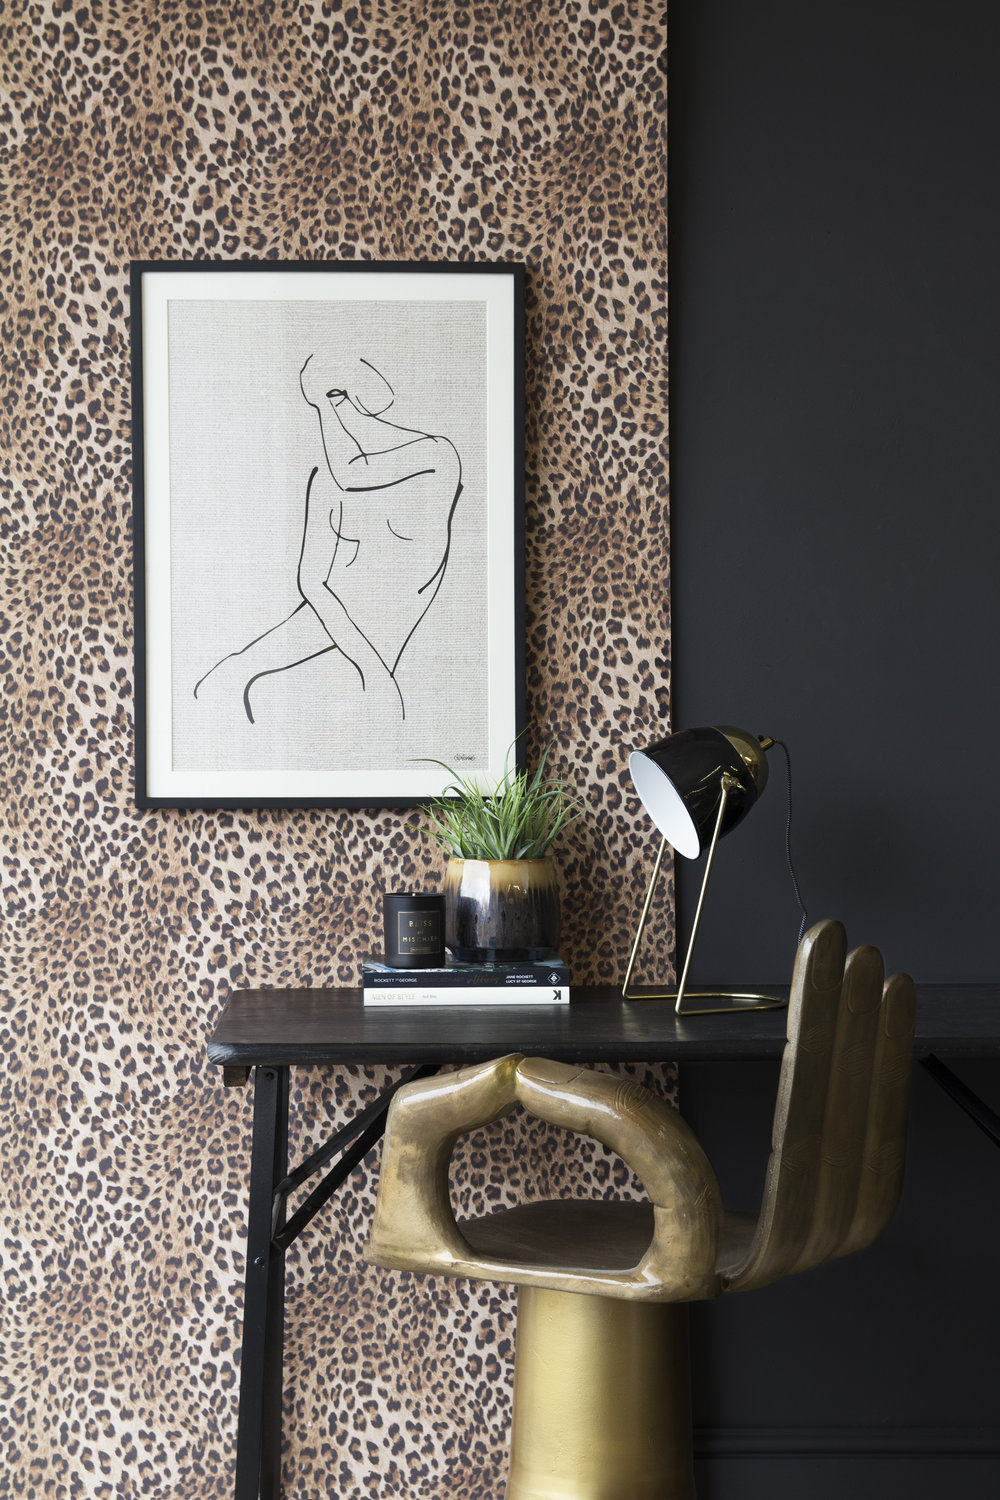 rockettstgeorge_leopard_print_hand_chair_desk_lifestyle_highres.jpg